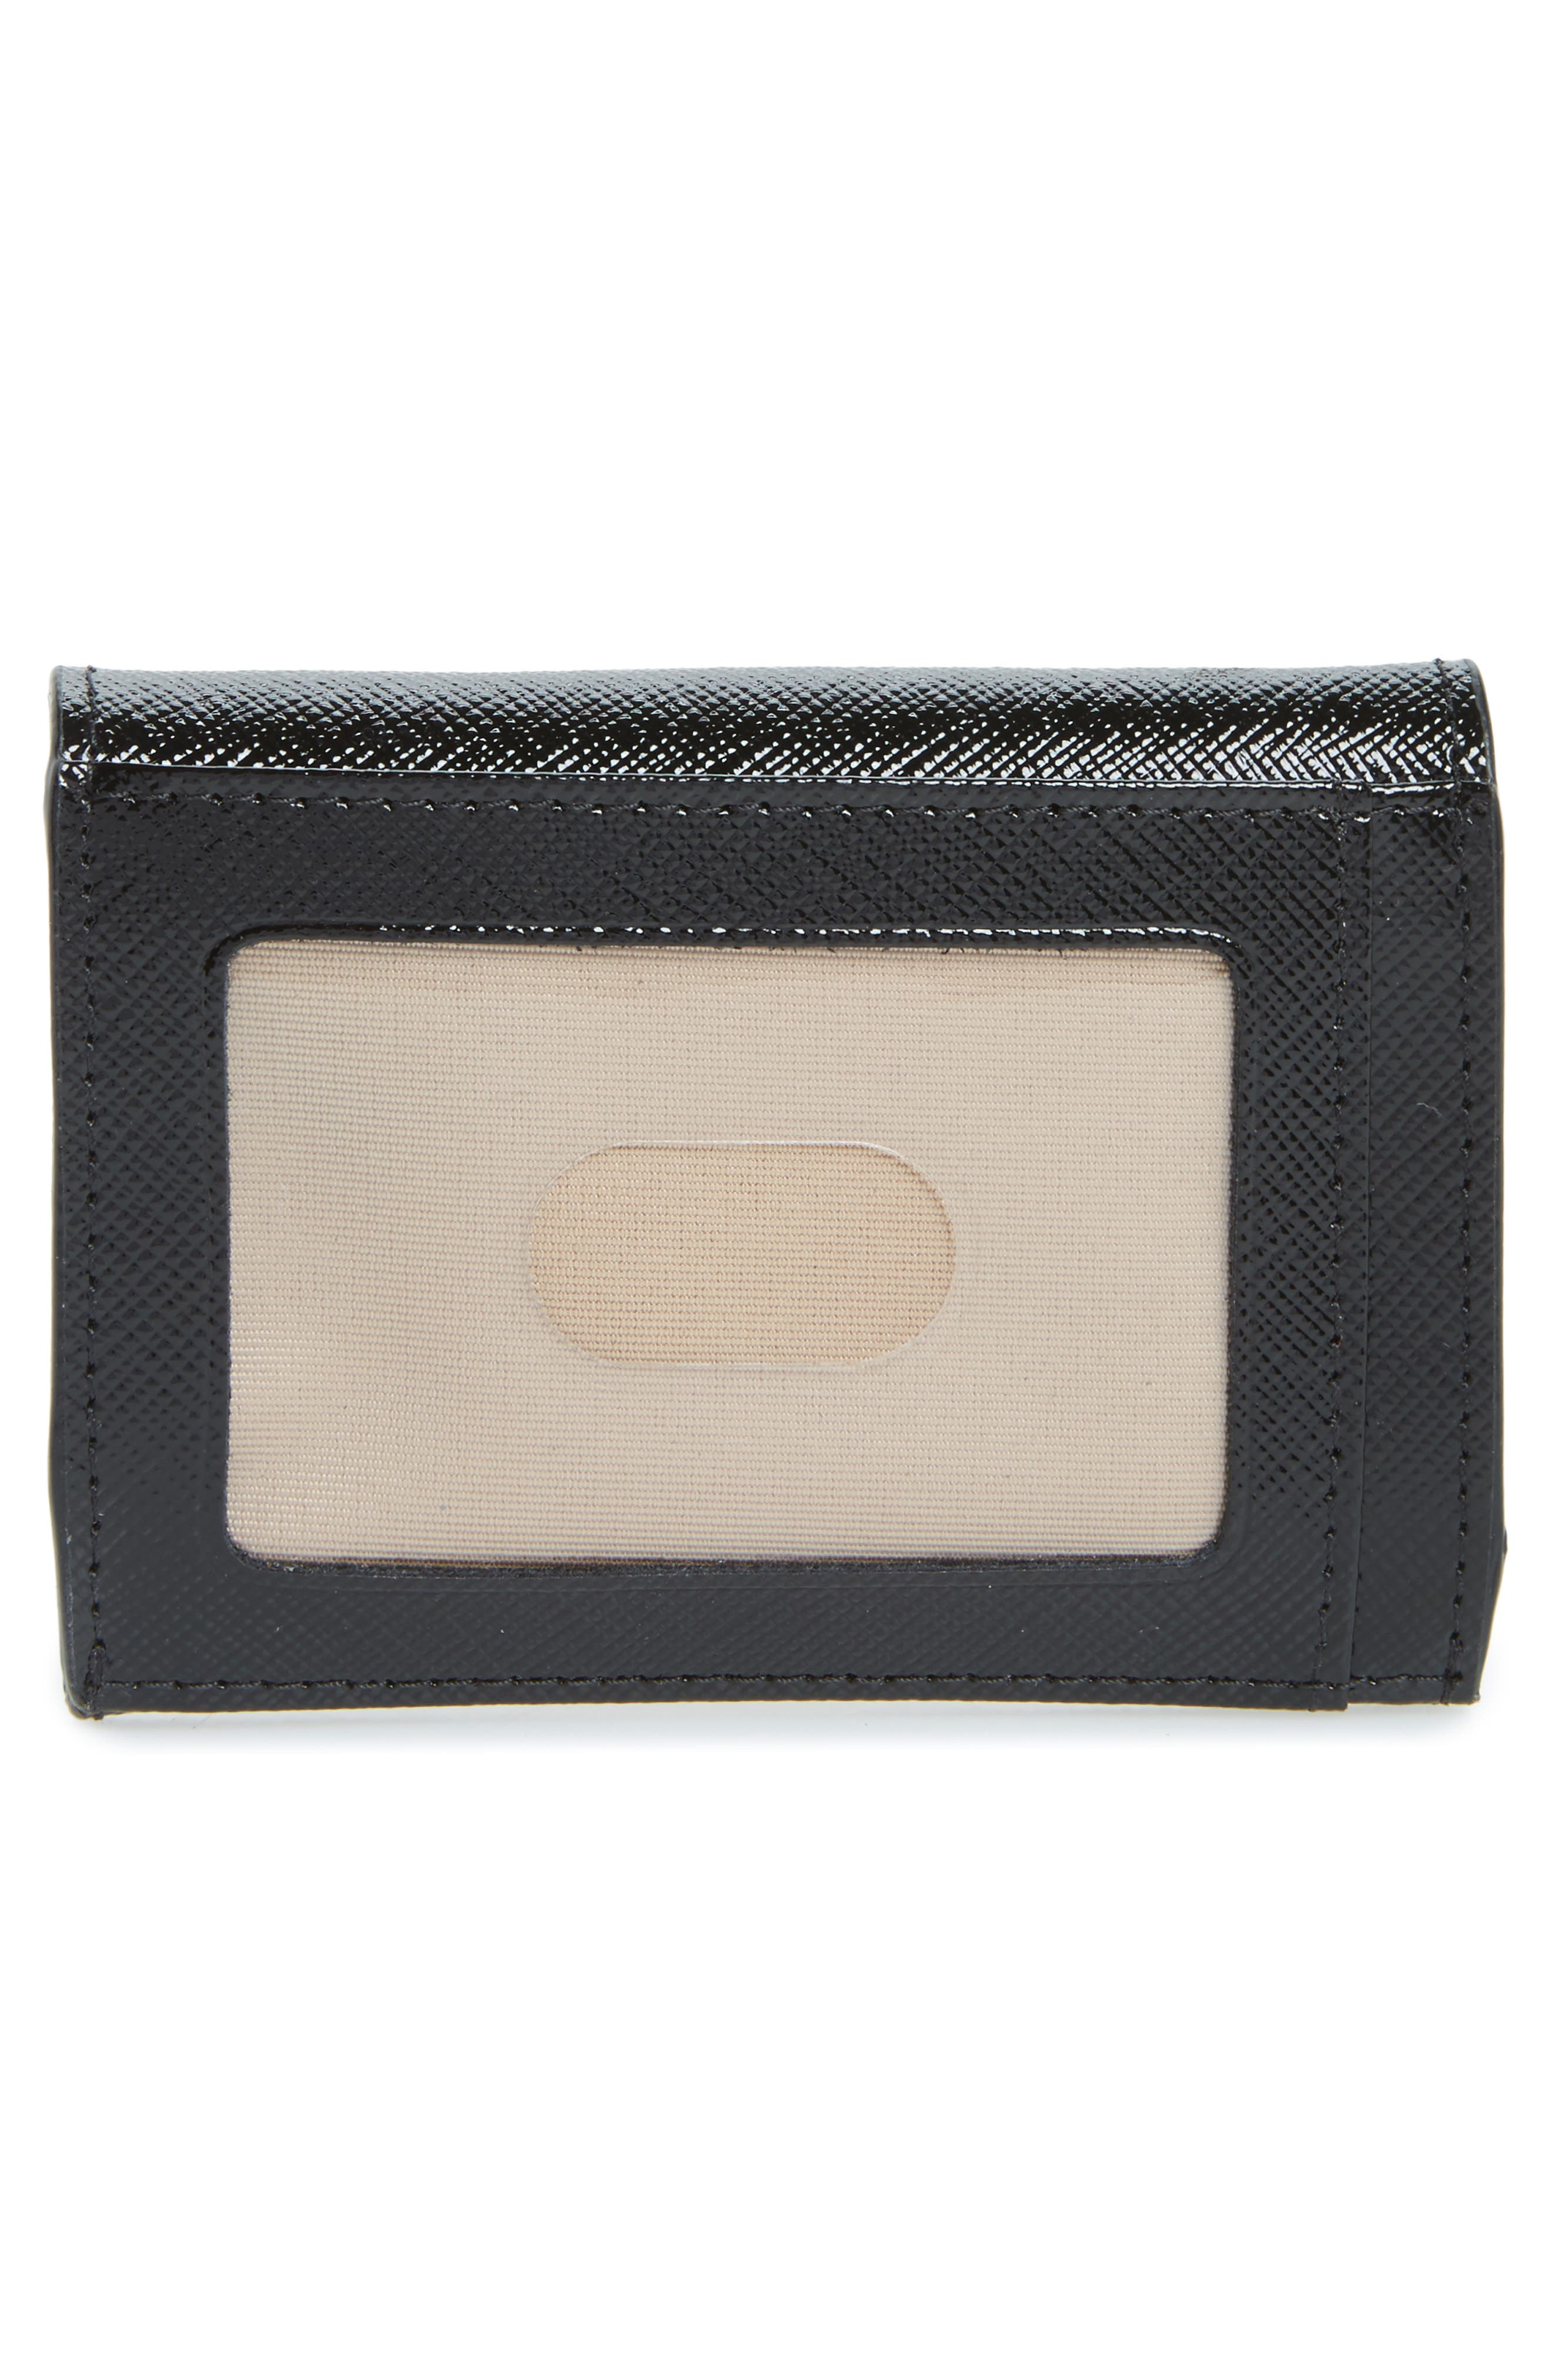 Leather Card Holder,                             Alternate thumbnail 3, color,                             001